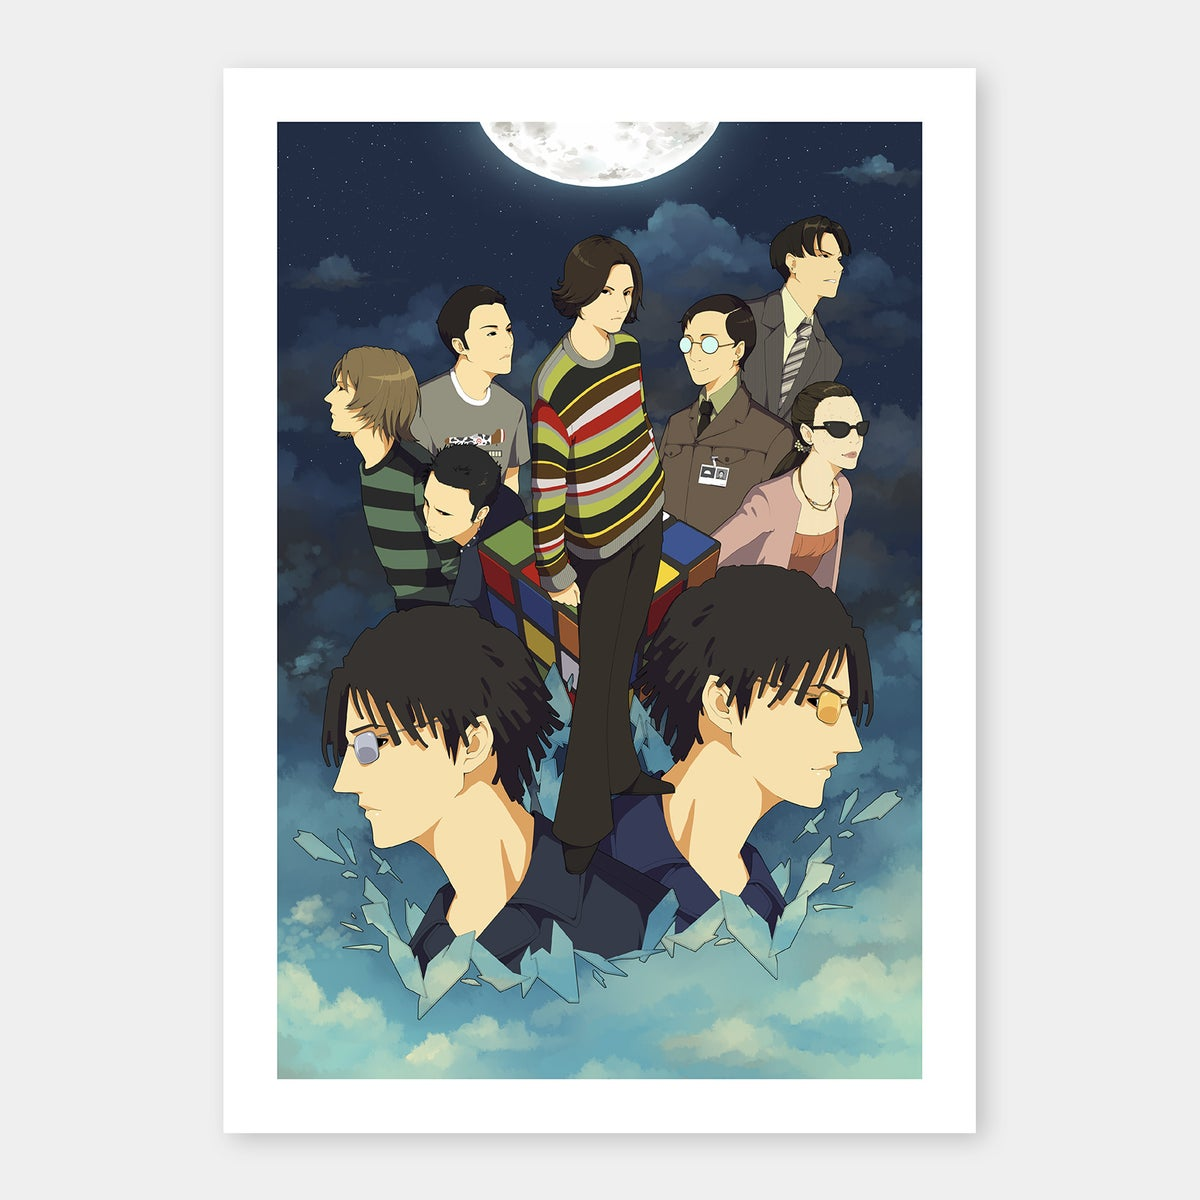 Image of Save Me - A4 Print